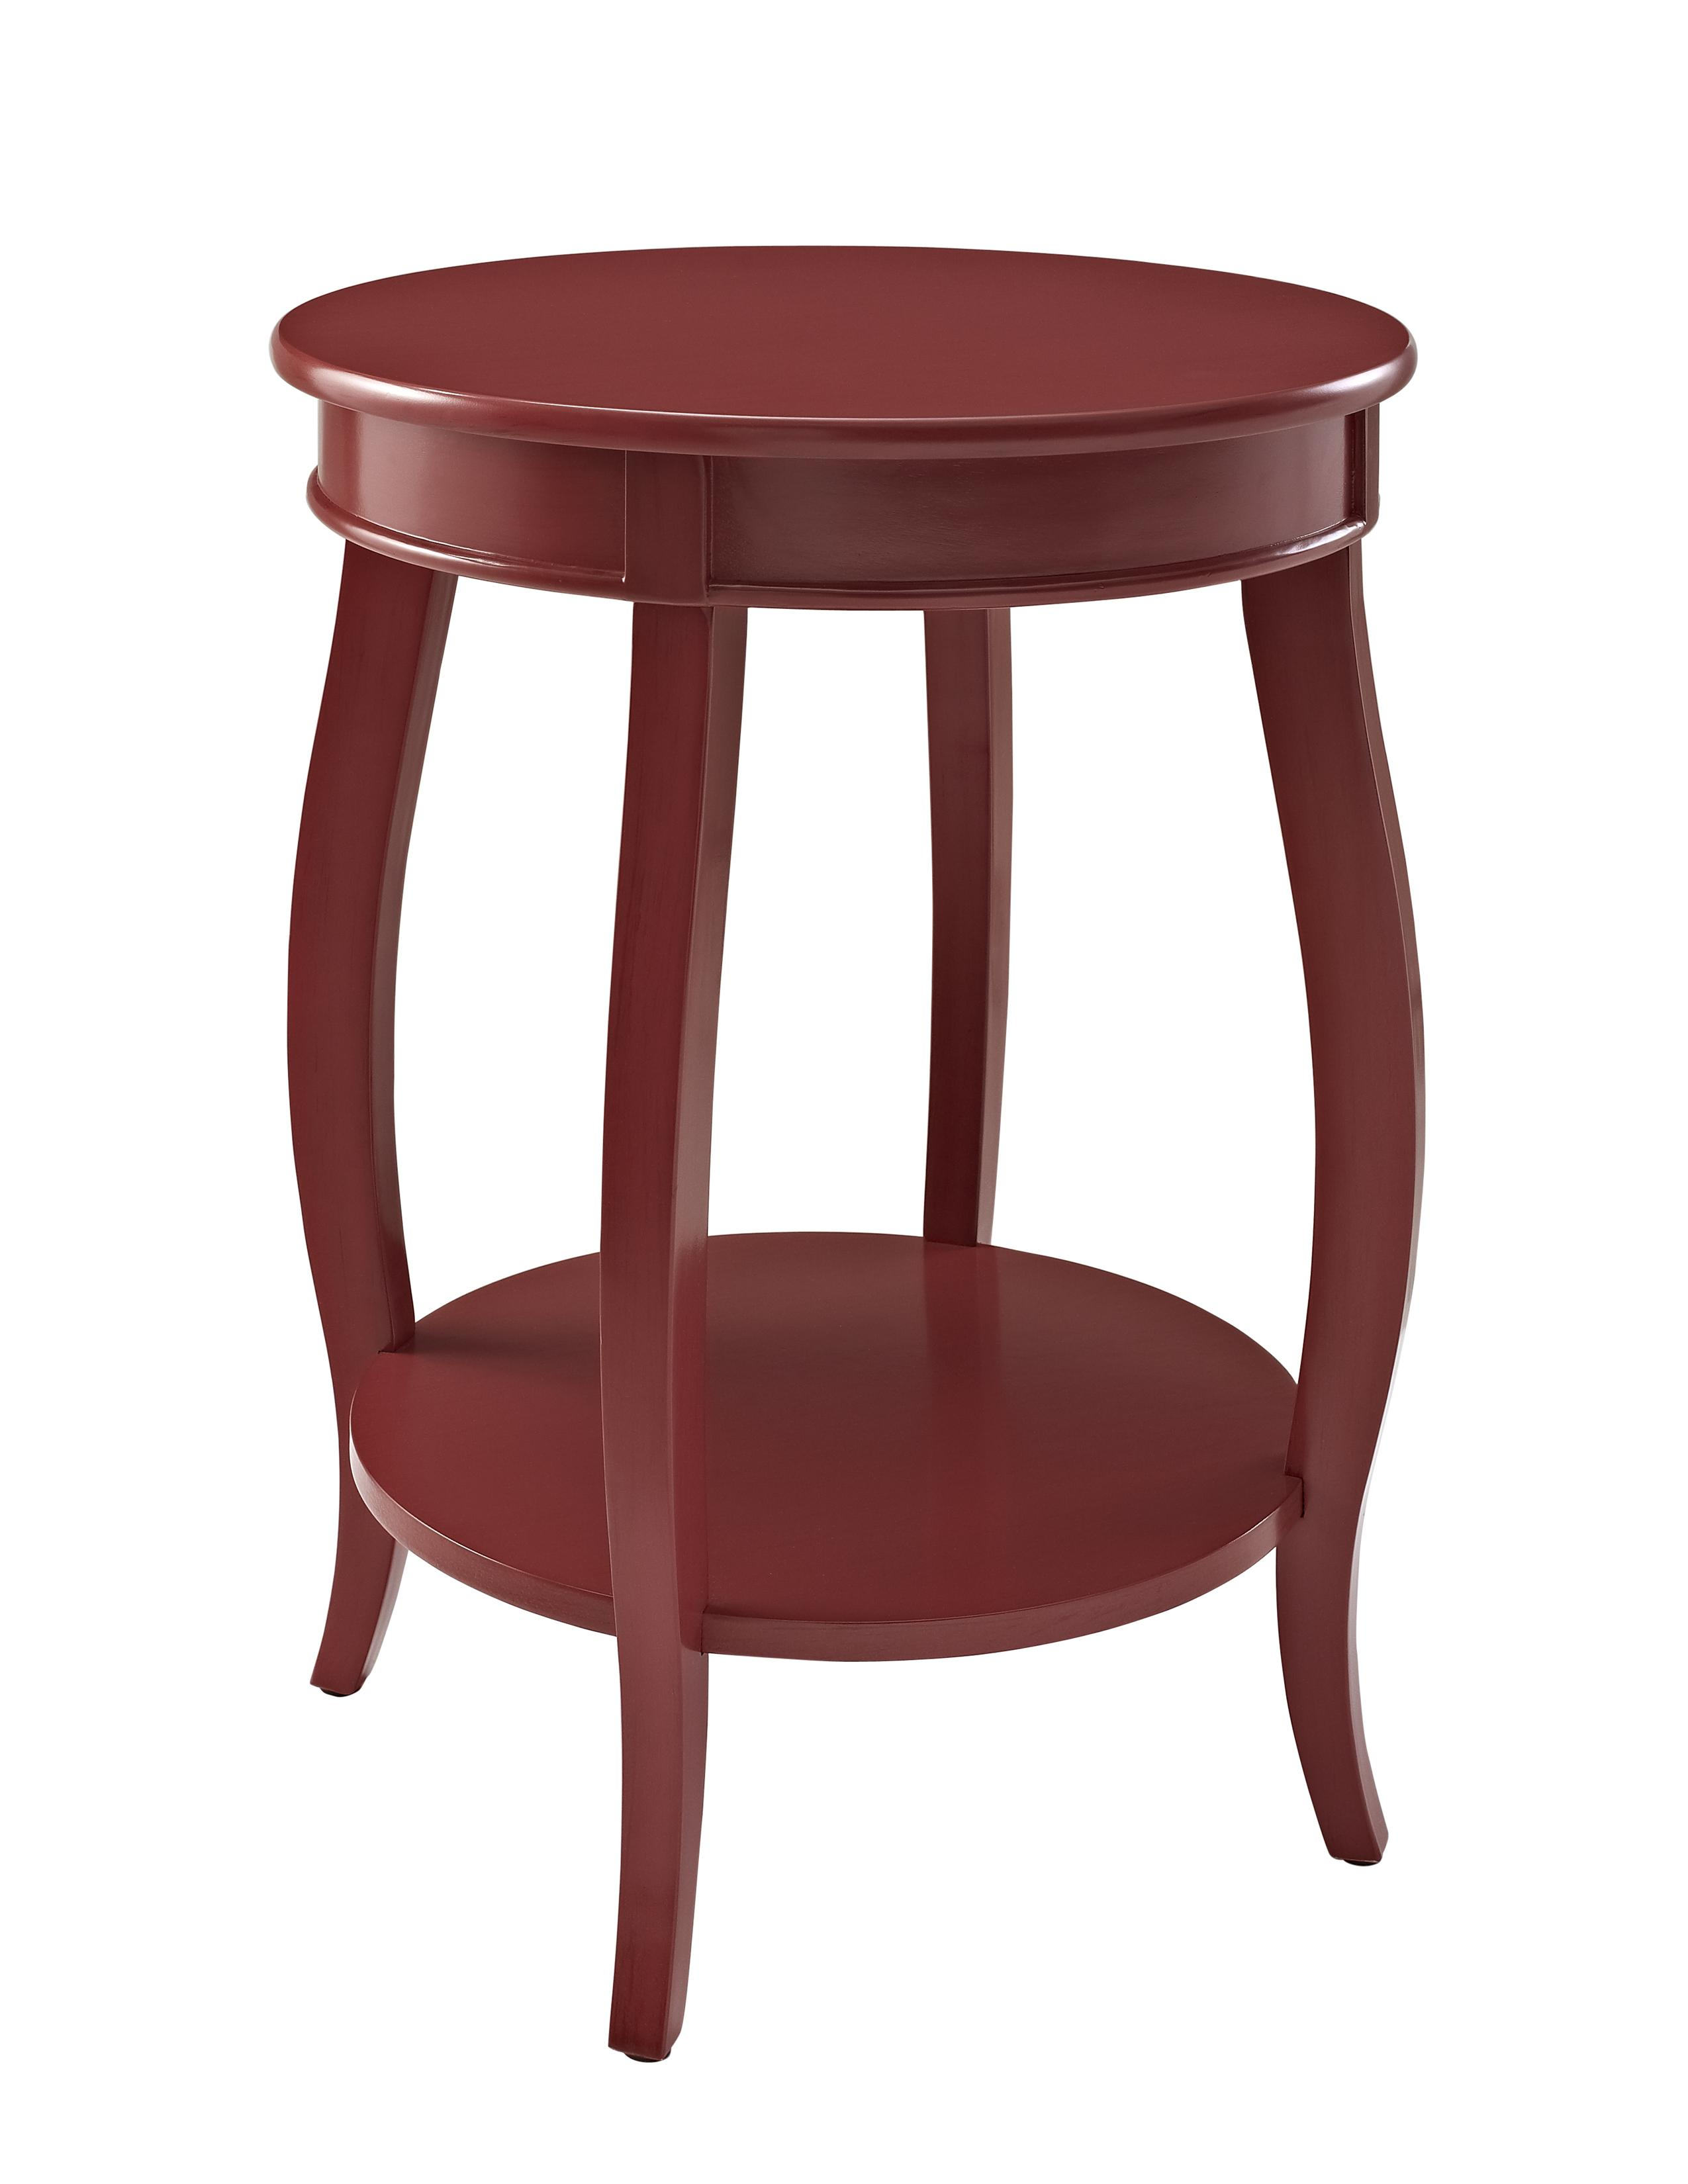 Powell Accent Tables Round Table w/ Shelf - Item Number: 471-350